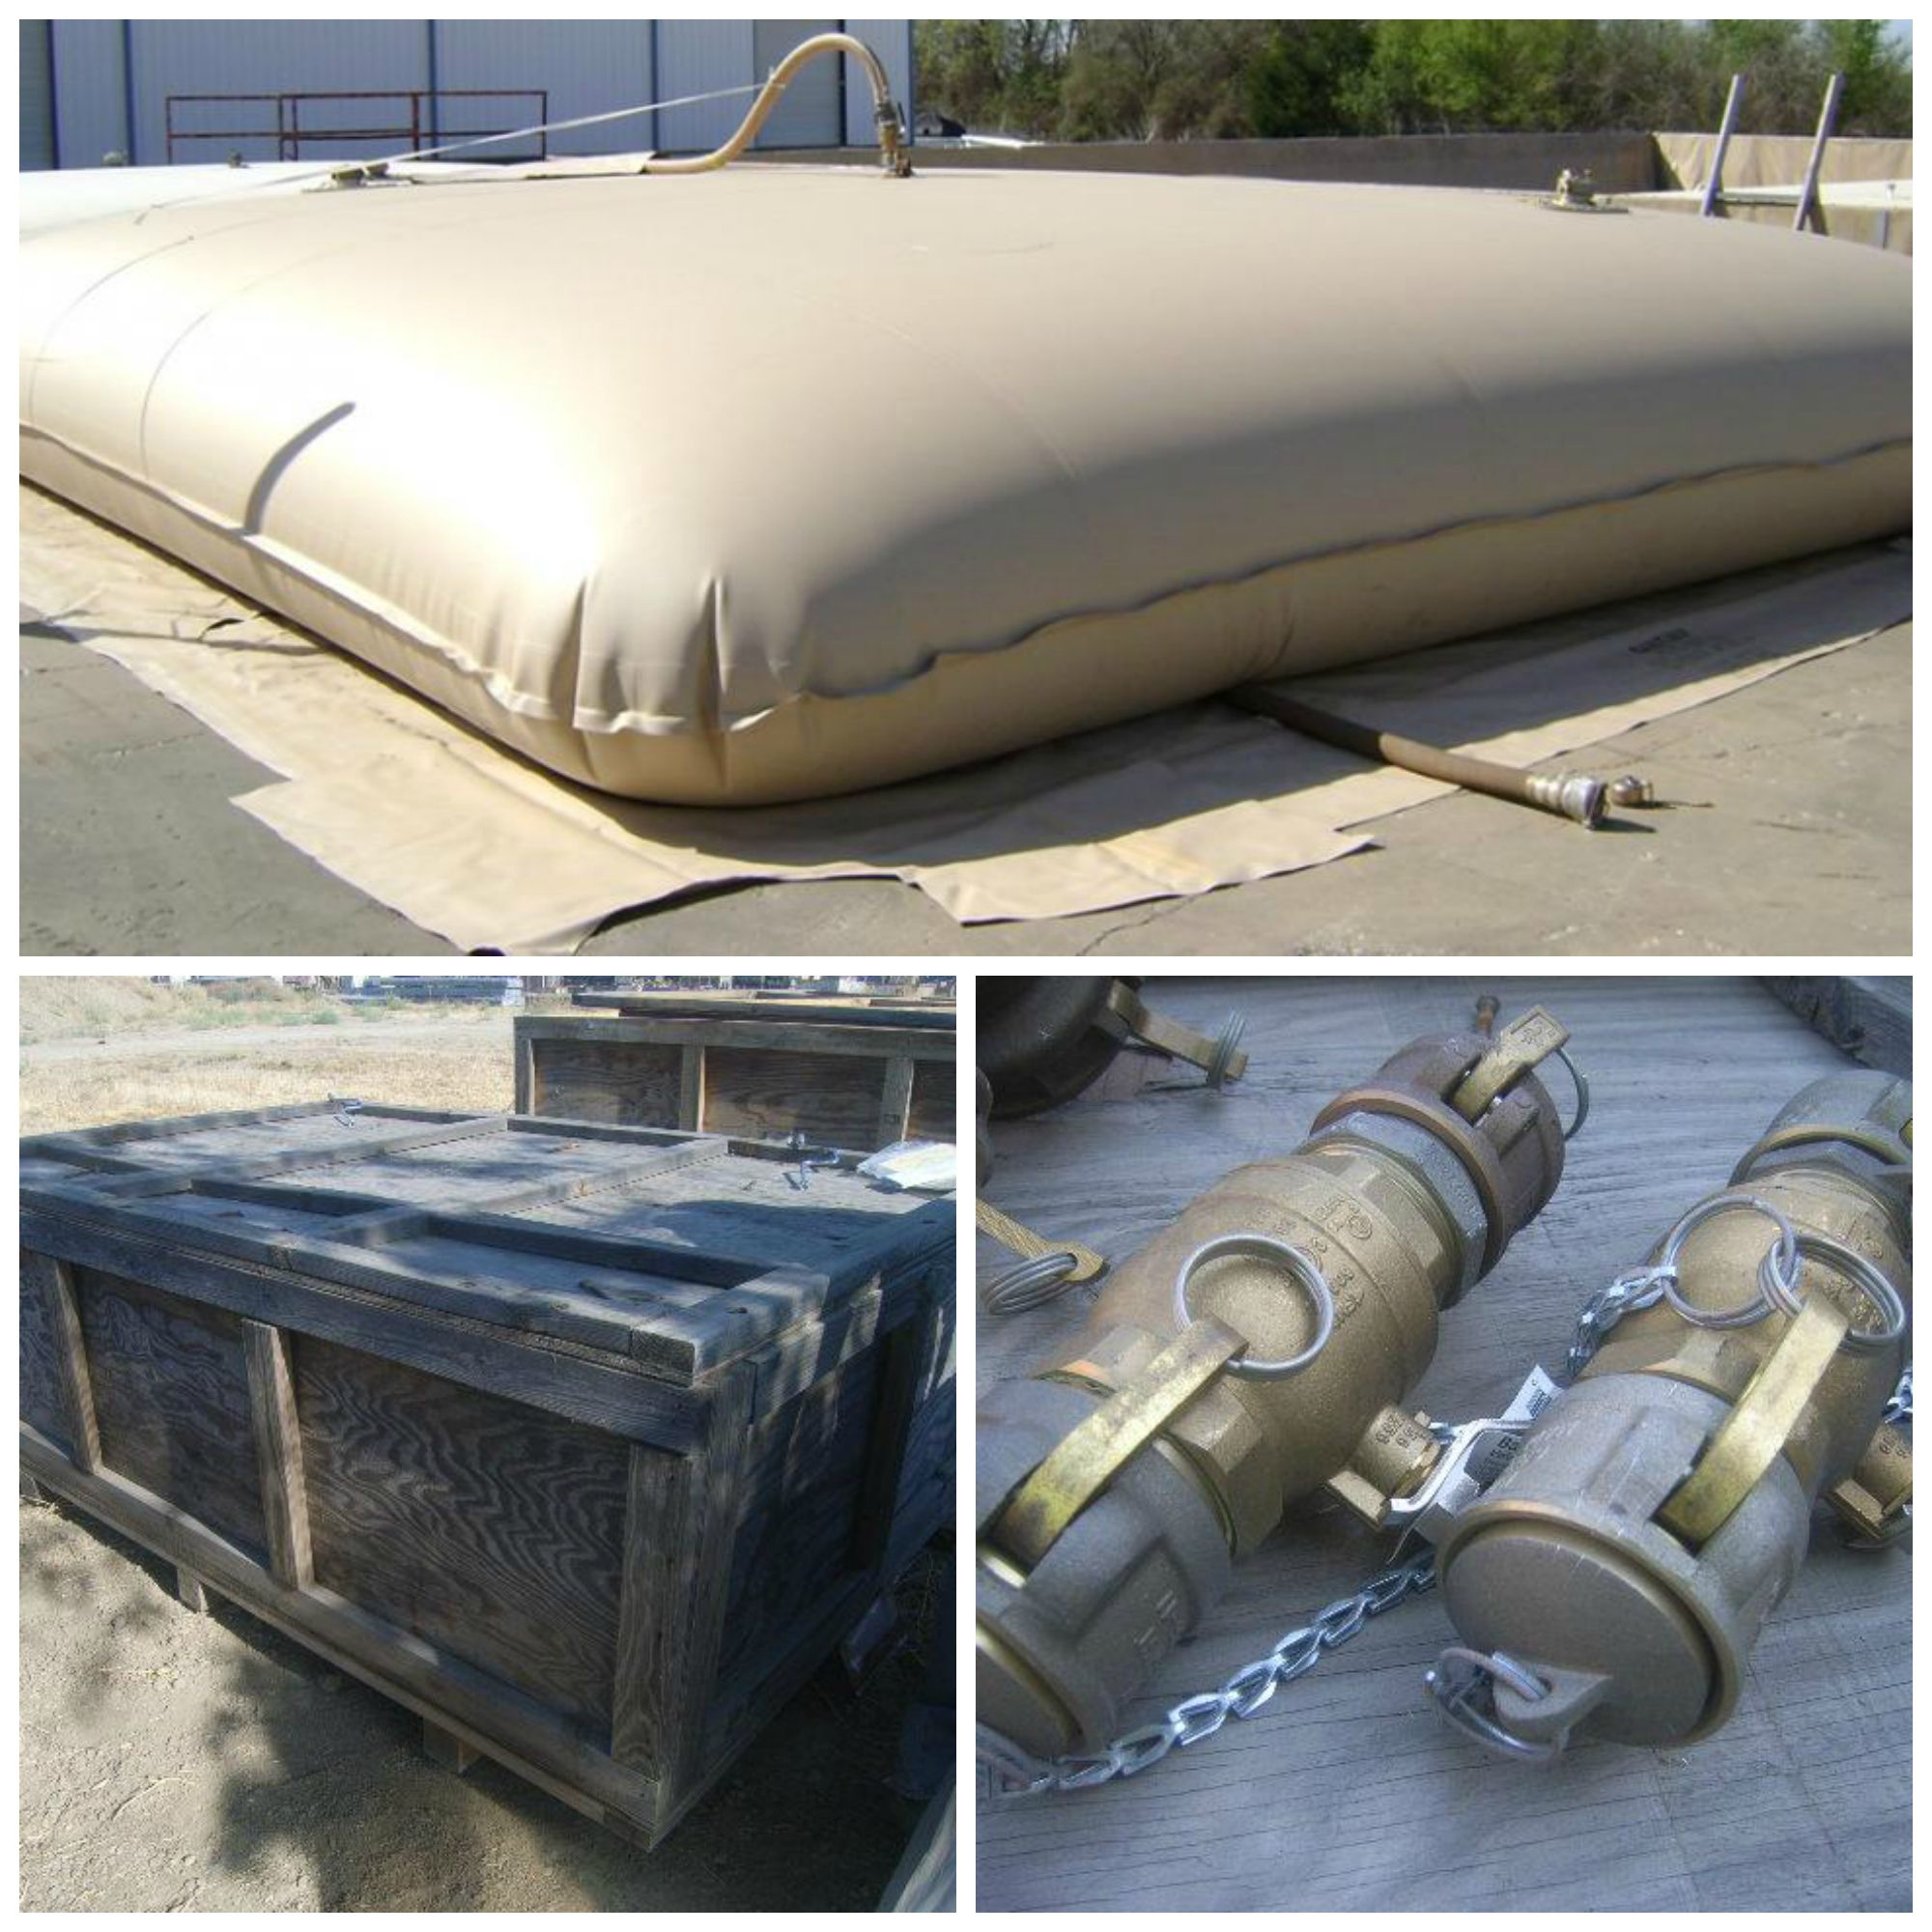 We have GTA Containers 50 000 Gallon Fabric Collapsible Water Tanks